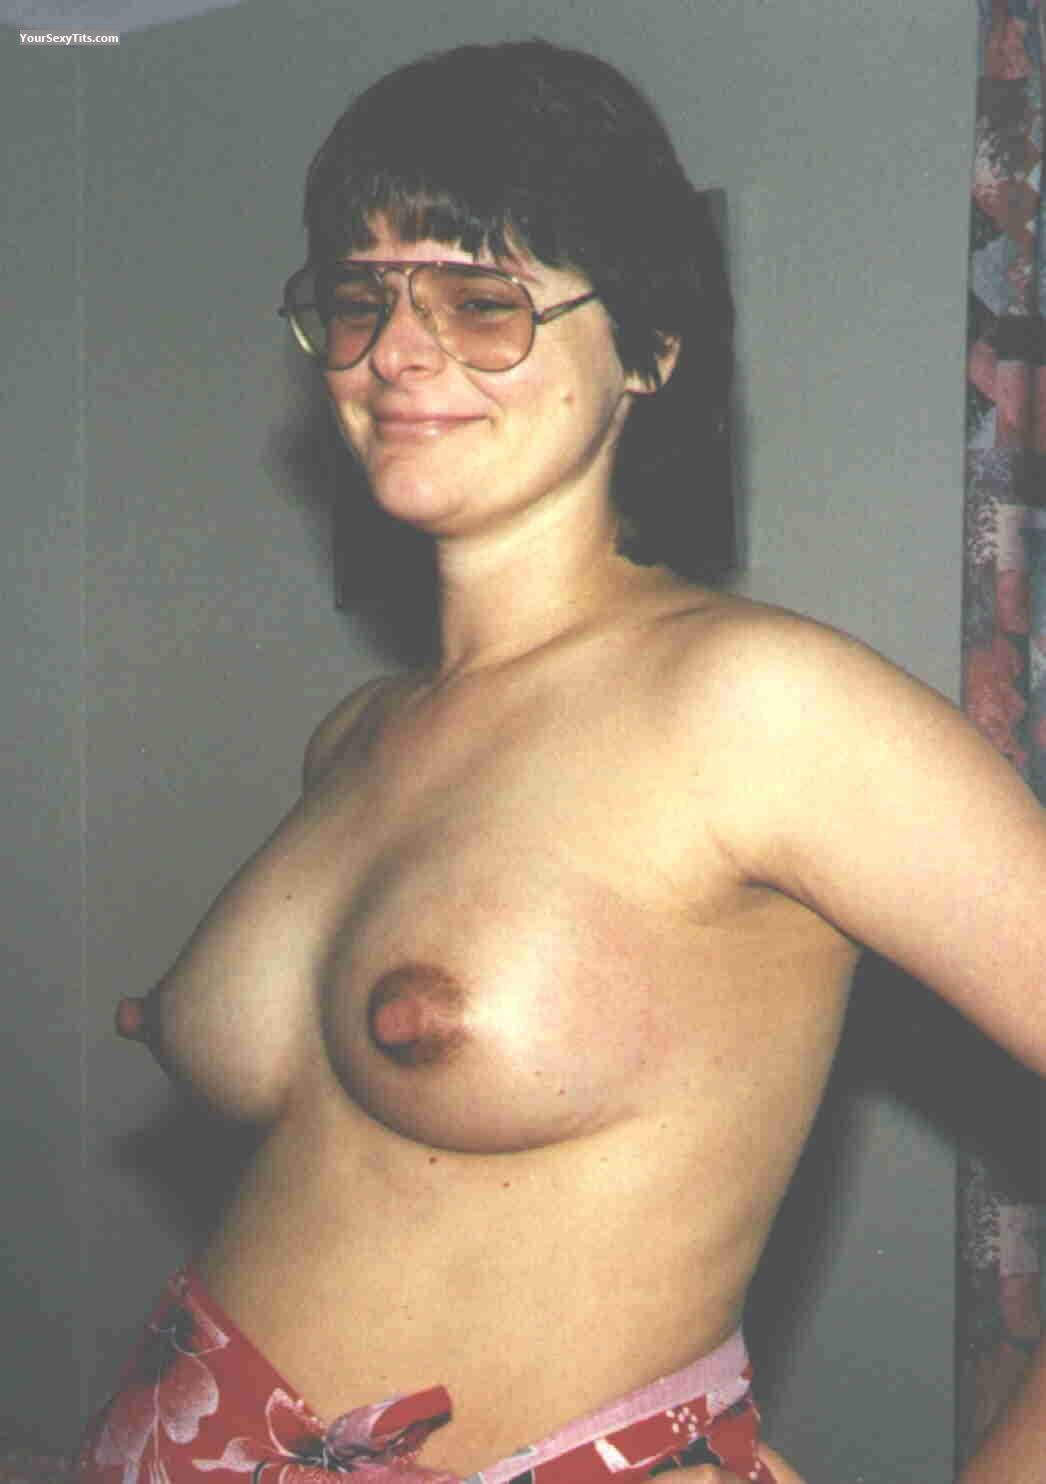 Tit Flash: Wife's Small Tits - Topless Karen from Australia